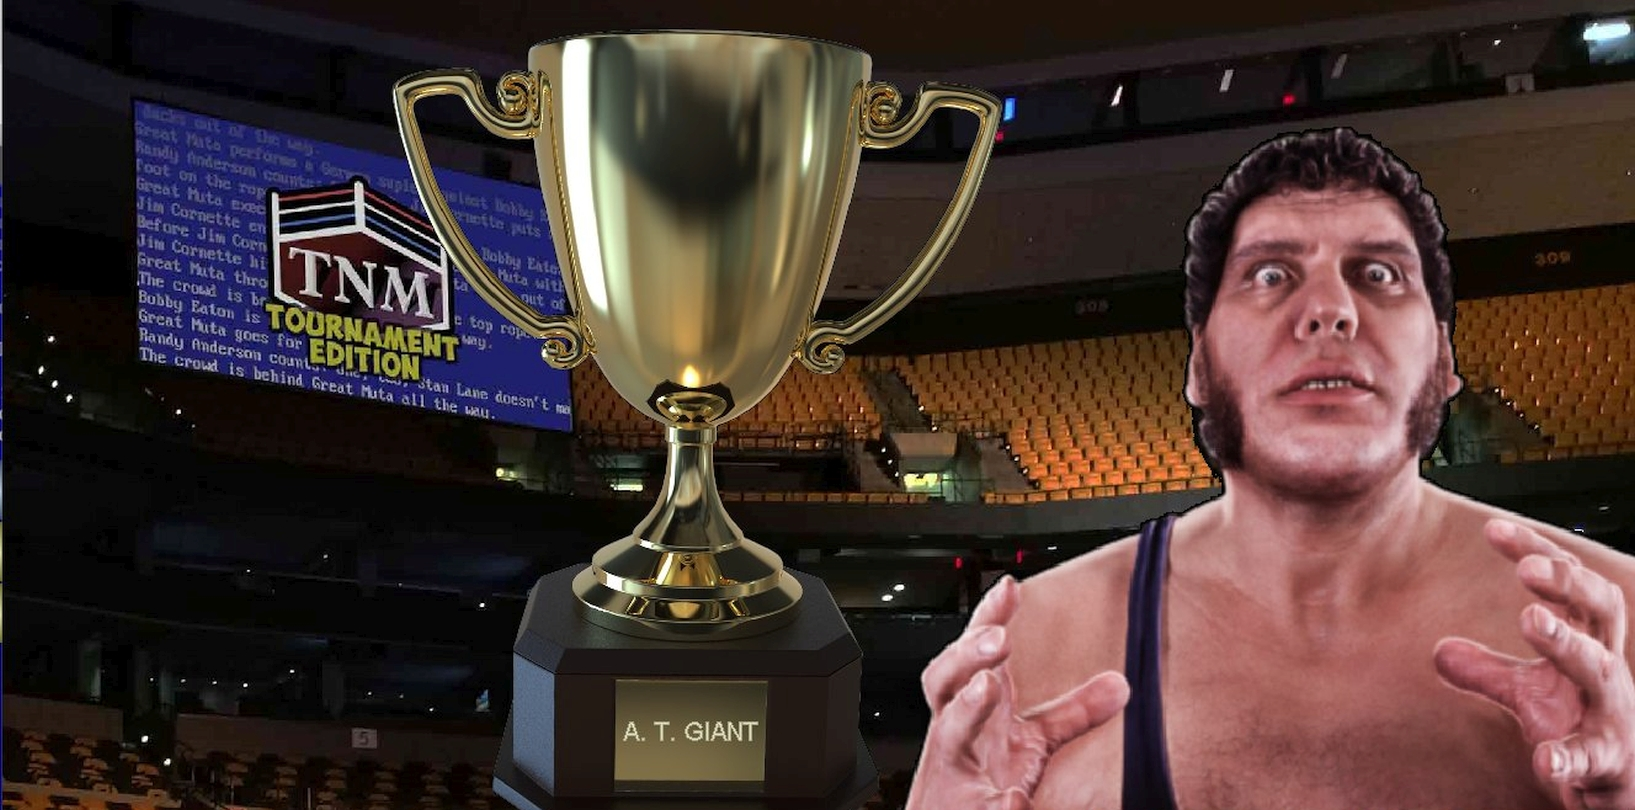 TNM Tournament Edition Now Available In Time To Celebrate Series' 25th Anniversary